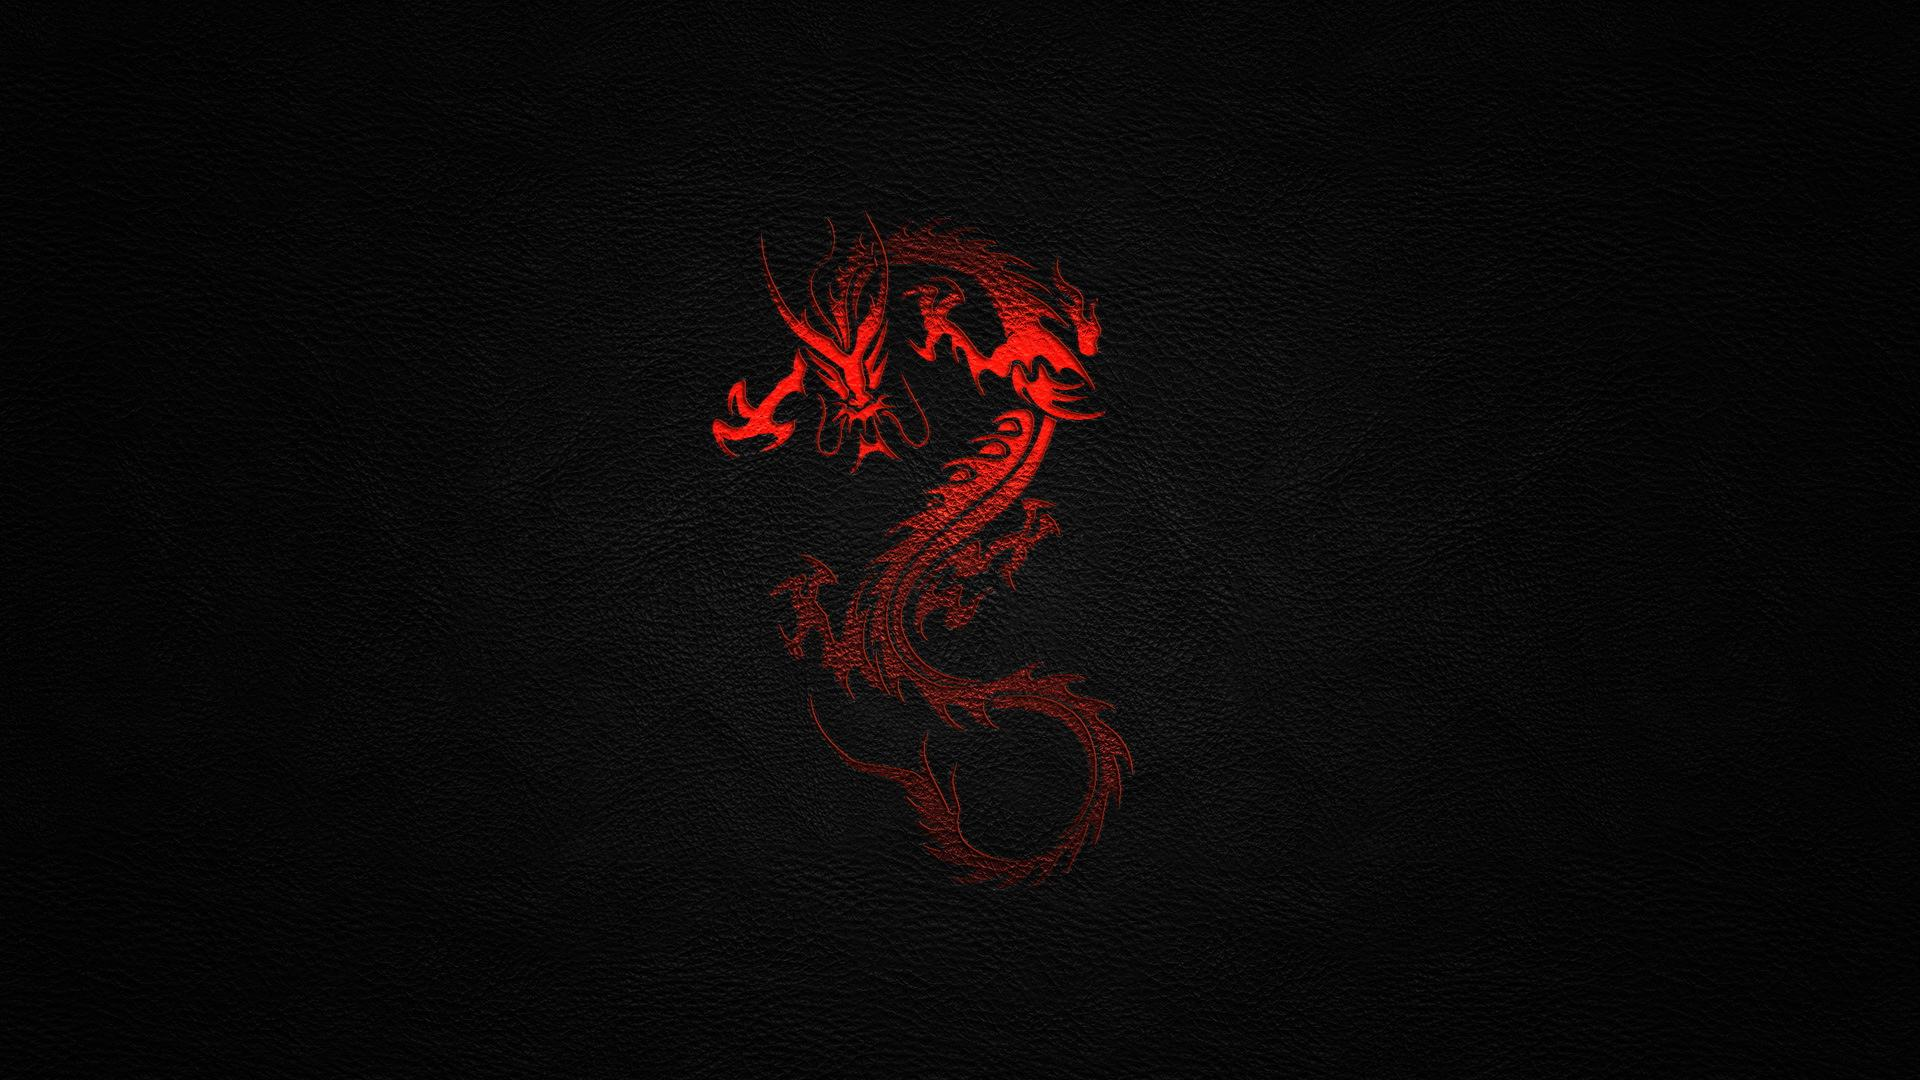 Red Dragon HD Wallpaper